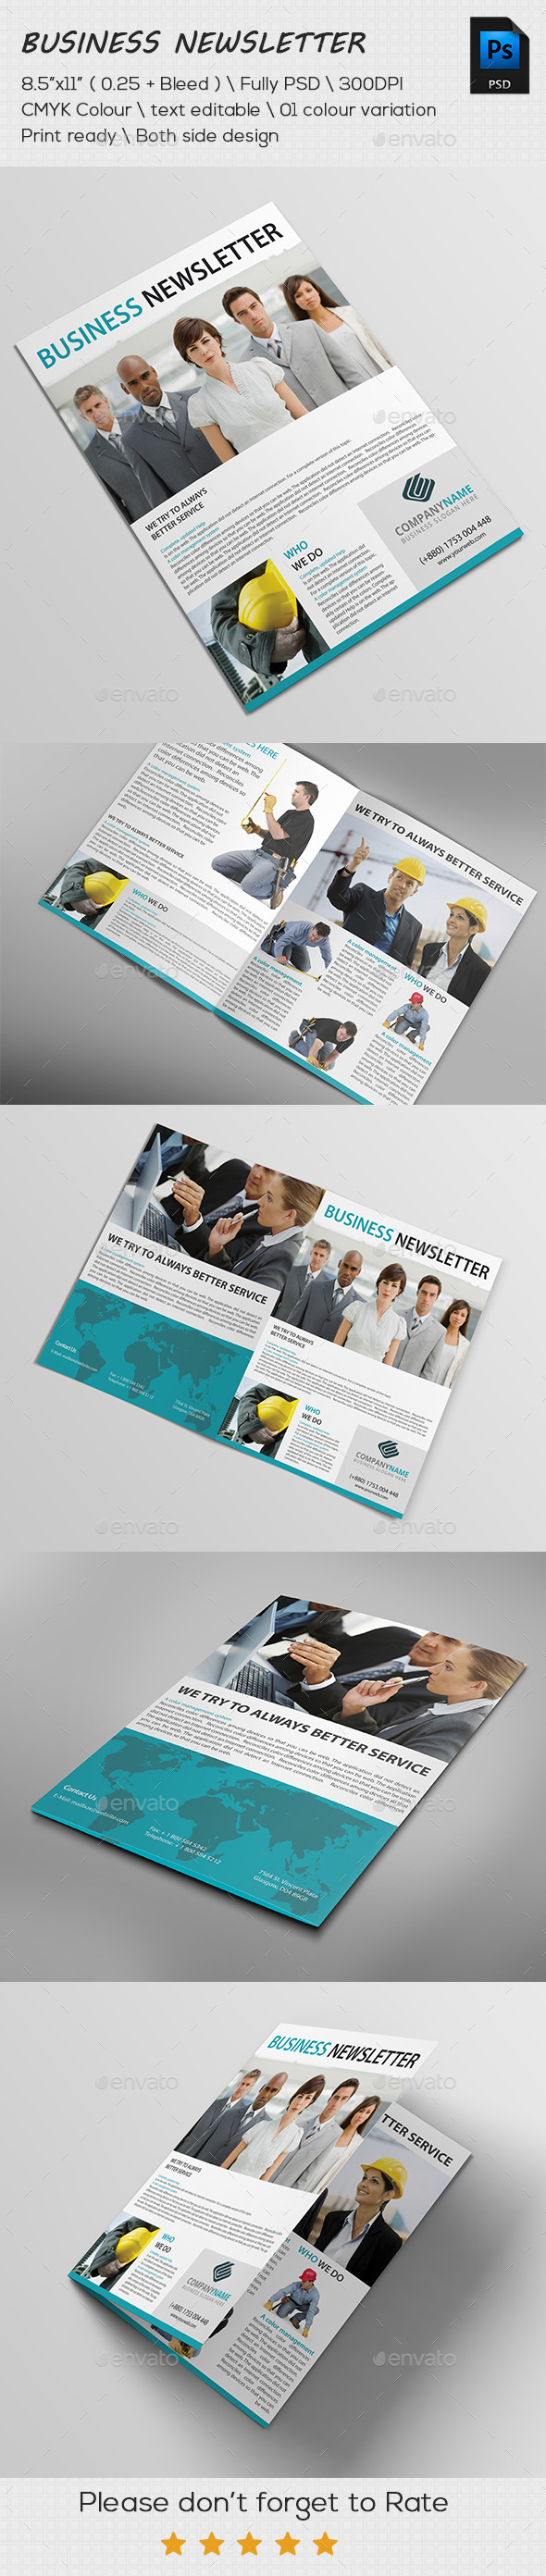 Corporate Business Newsletter Template  Newsletters Print Templates